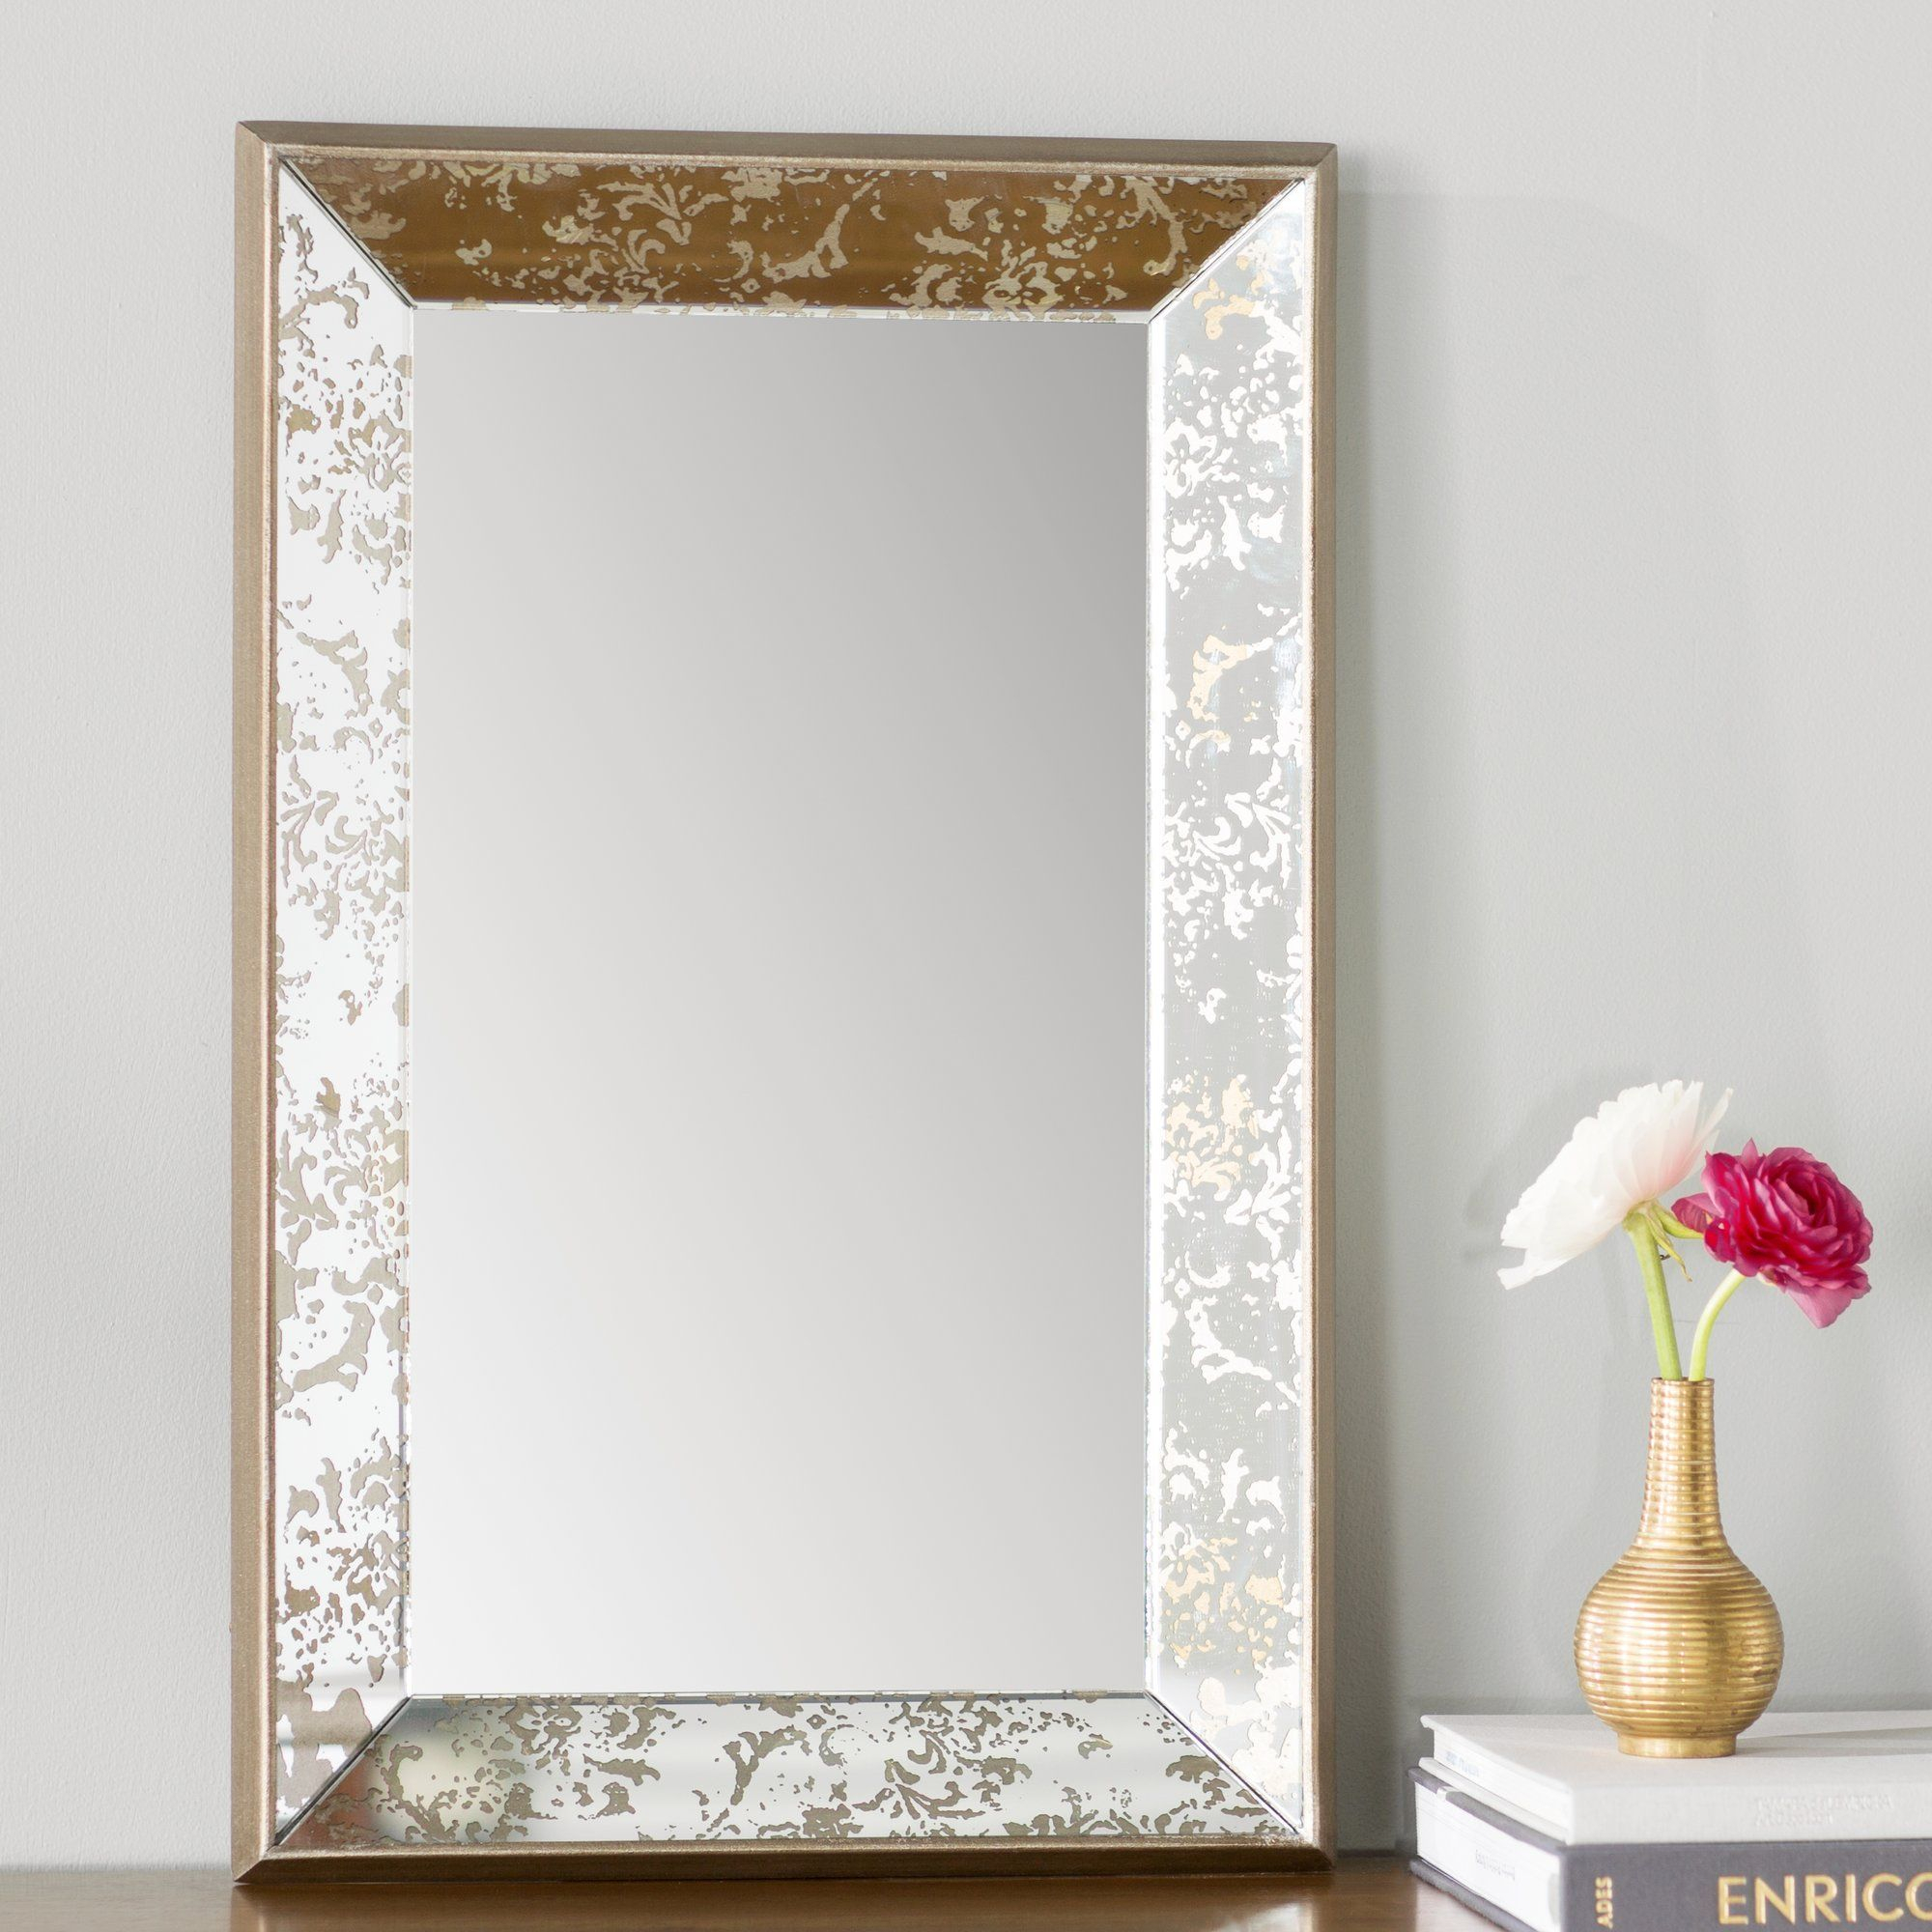 4 Fantastic Ideas: Long Wall Mirror Frames Oval Wall Mirror Intended For Stamey Wall Mirrors (Image 2 of 20)